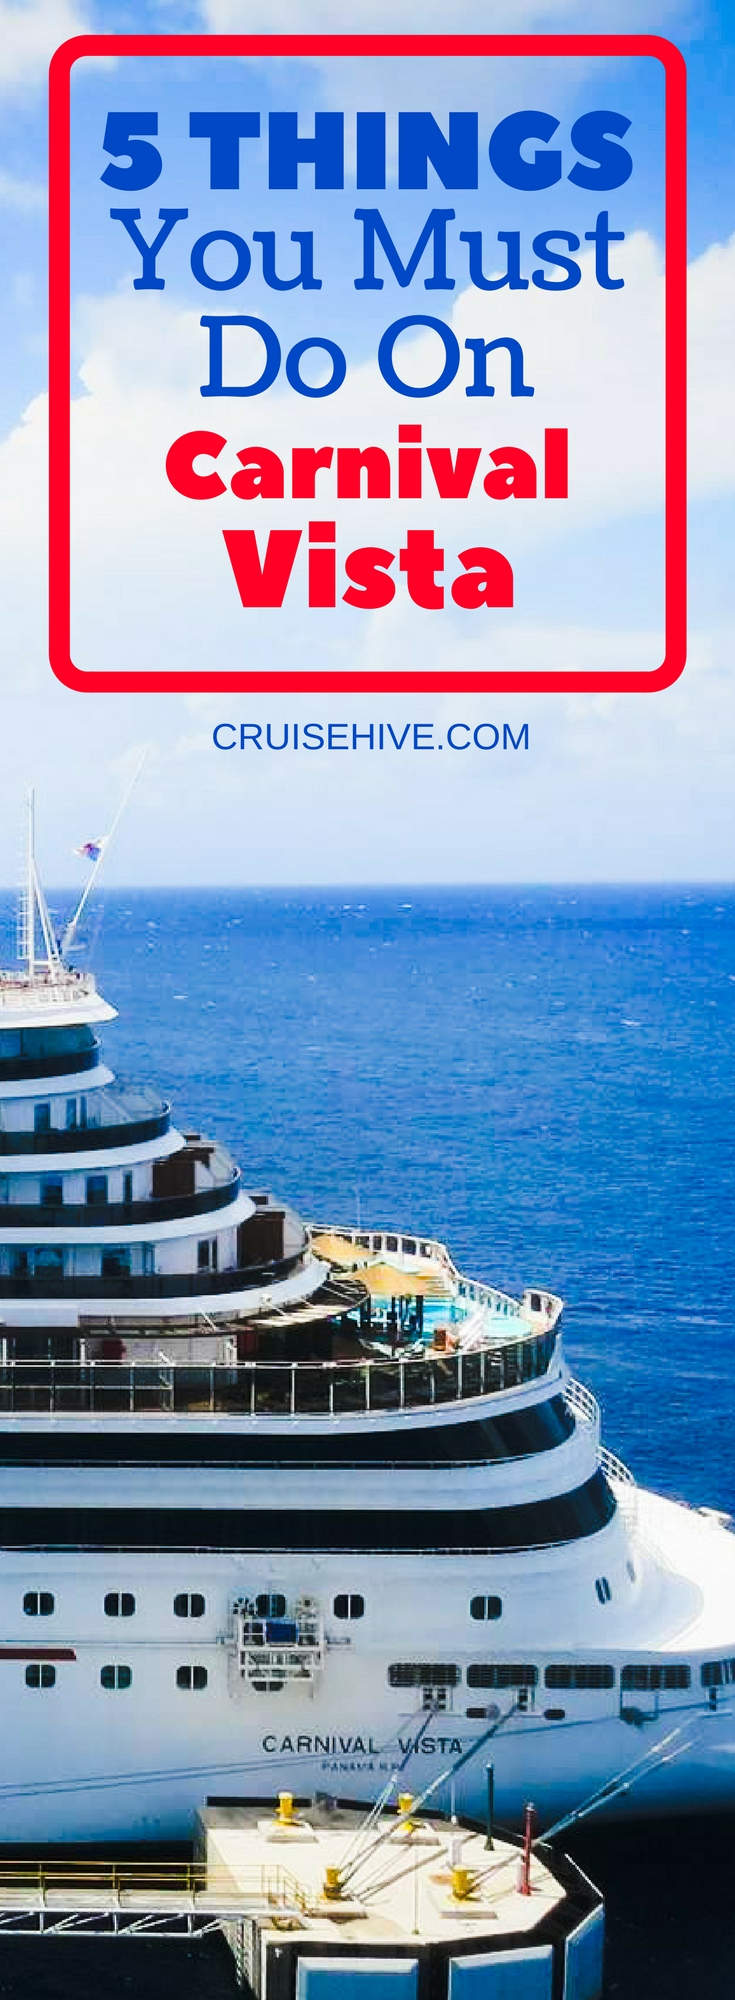 5 Things You Must Do On Carnival Vista